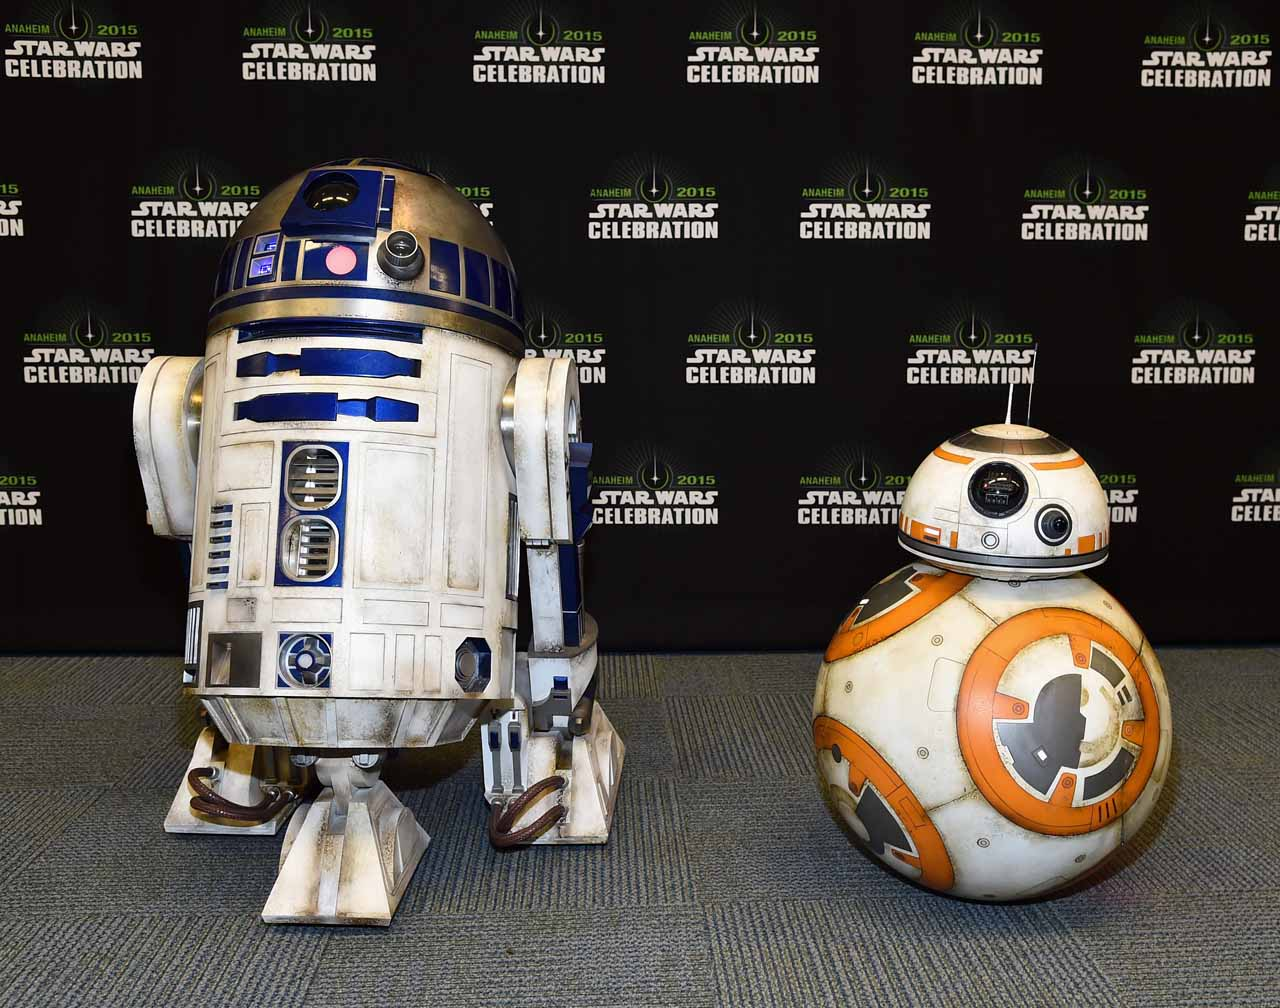 ANAHEIM, CA - APRIL 16: R2-D2 (L) and BB-8 attend Star Wars Celebration 2015 on April 16, 2015 in Anaheim, California. (Photo by Alberto E. Rodriguez/Getty Images for Disney) *** Local Caption *** R2-D2;BB-8